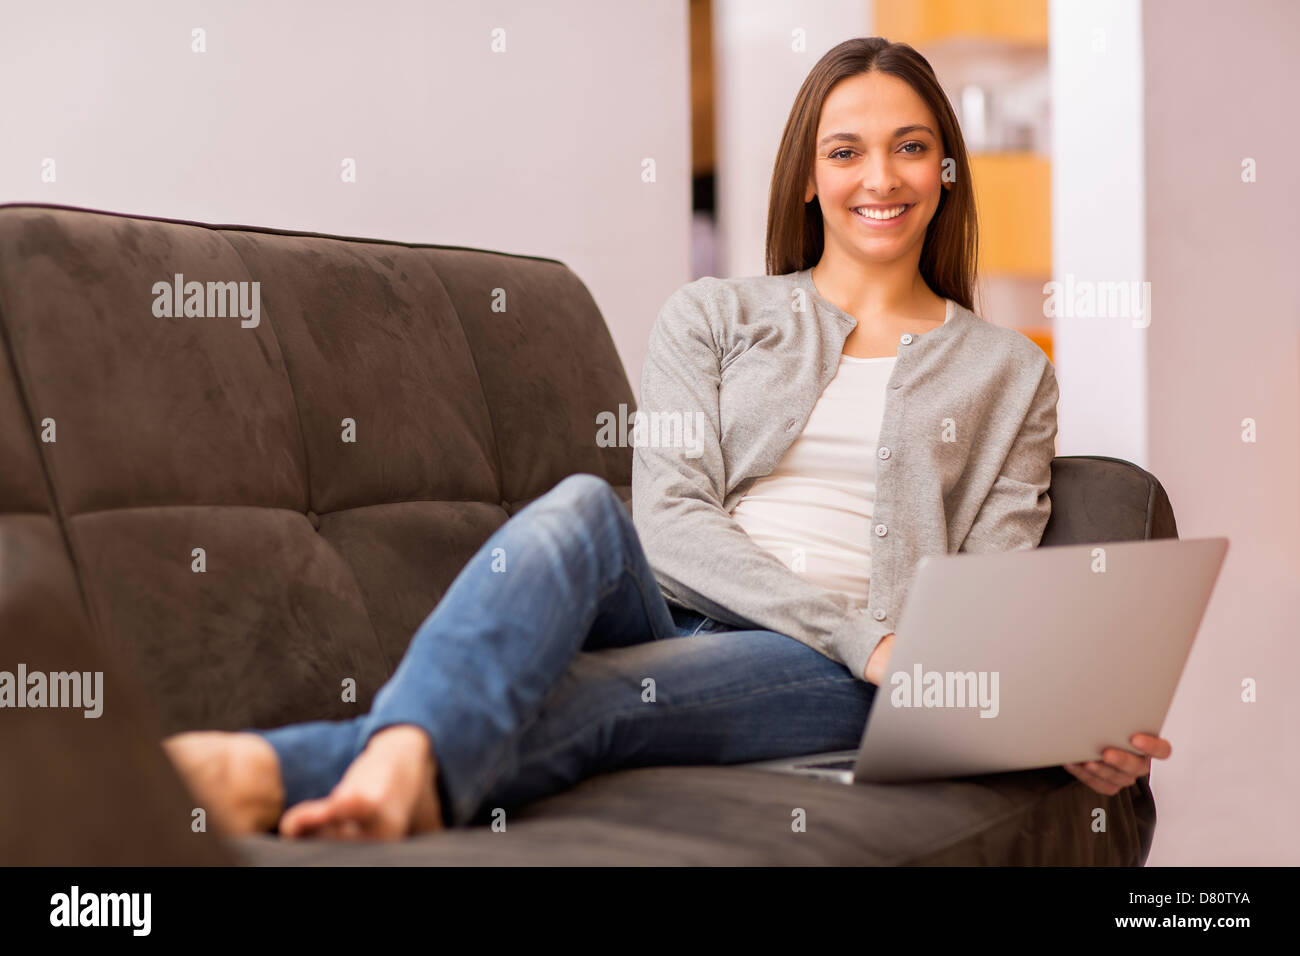 Smiling female teleworking at home - Stock Image